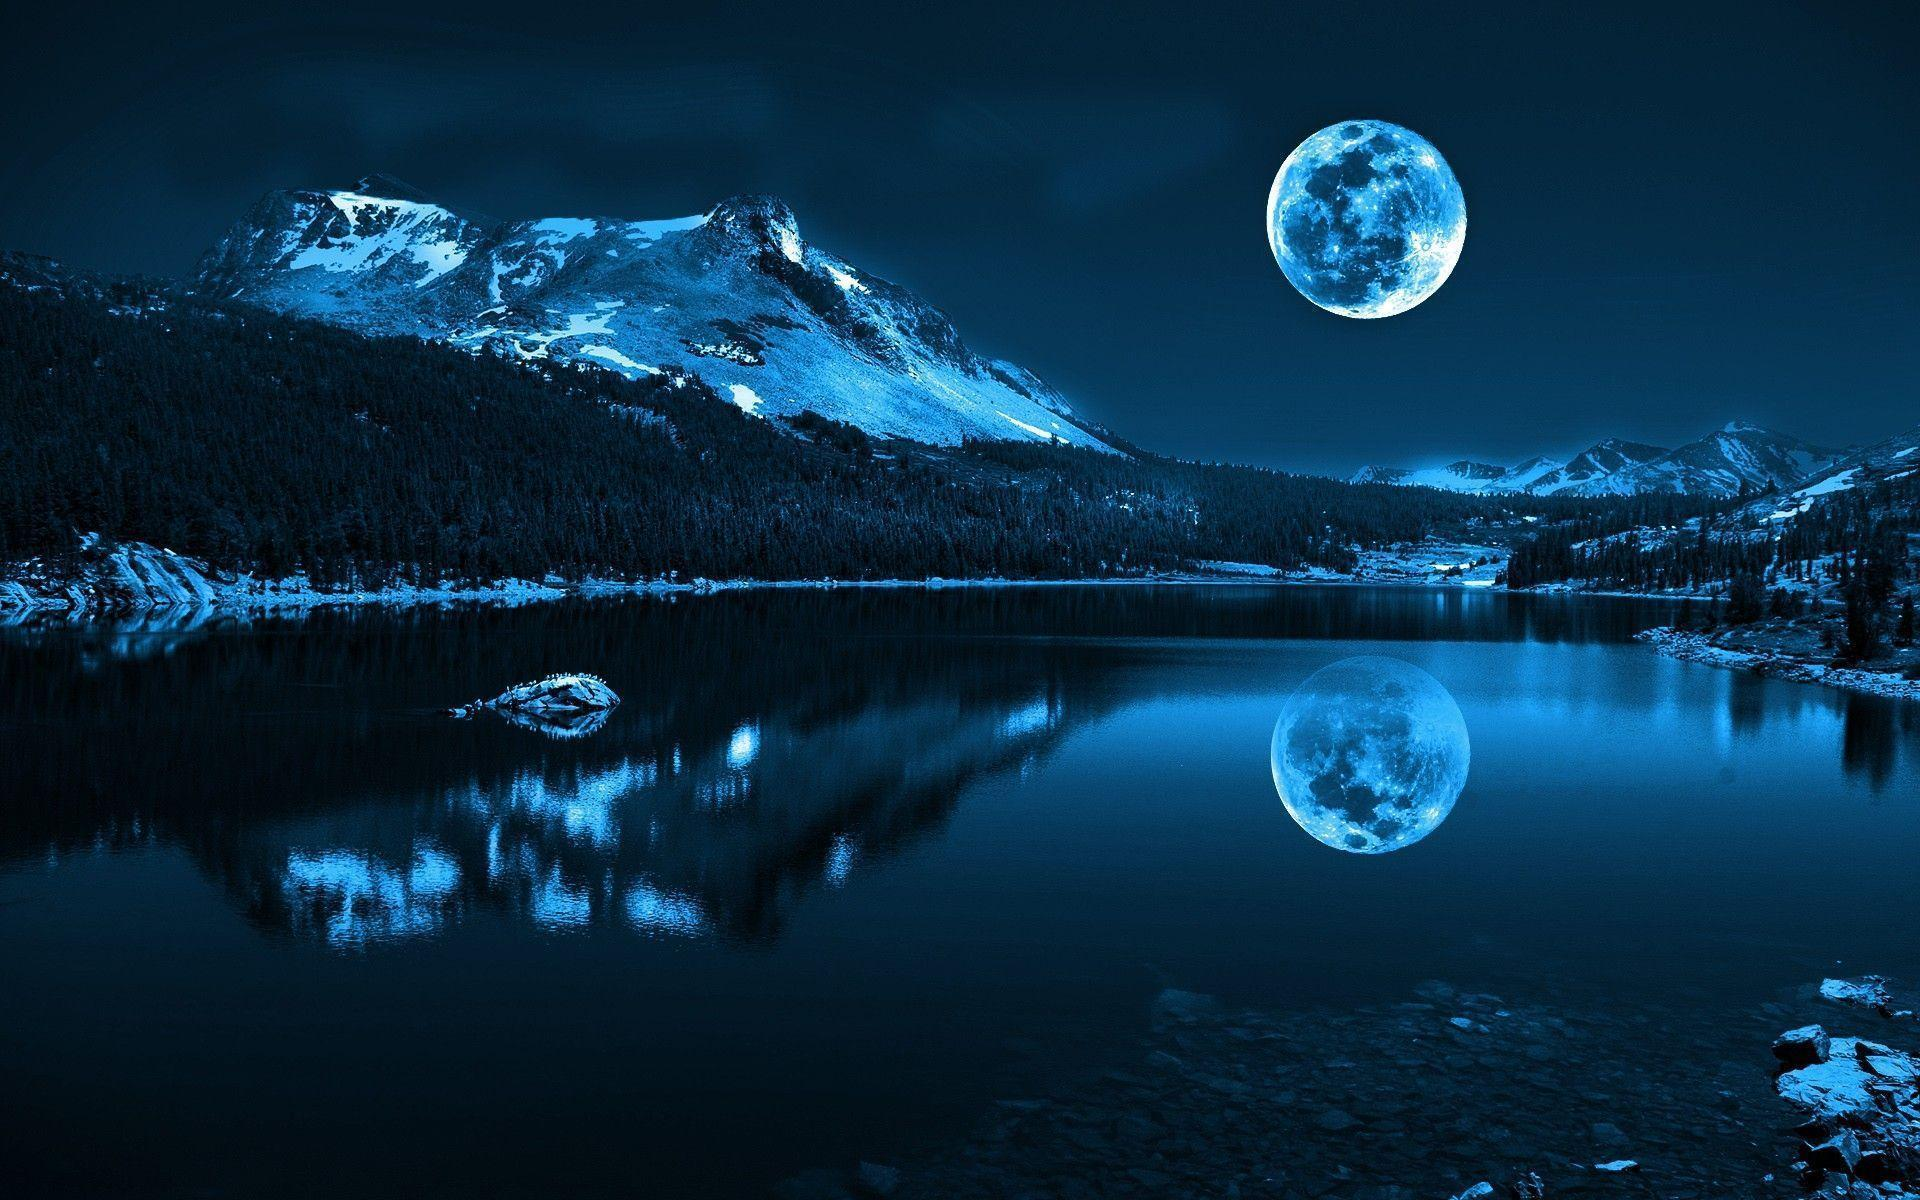 Moon Night Hd Wallpaper Freehdwalls 3dabstract Images